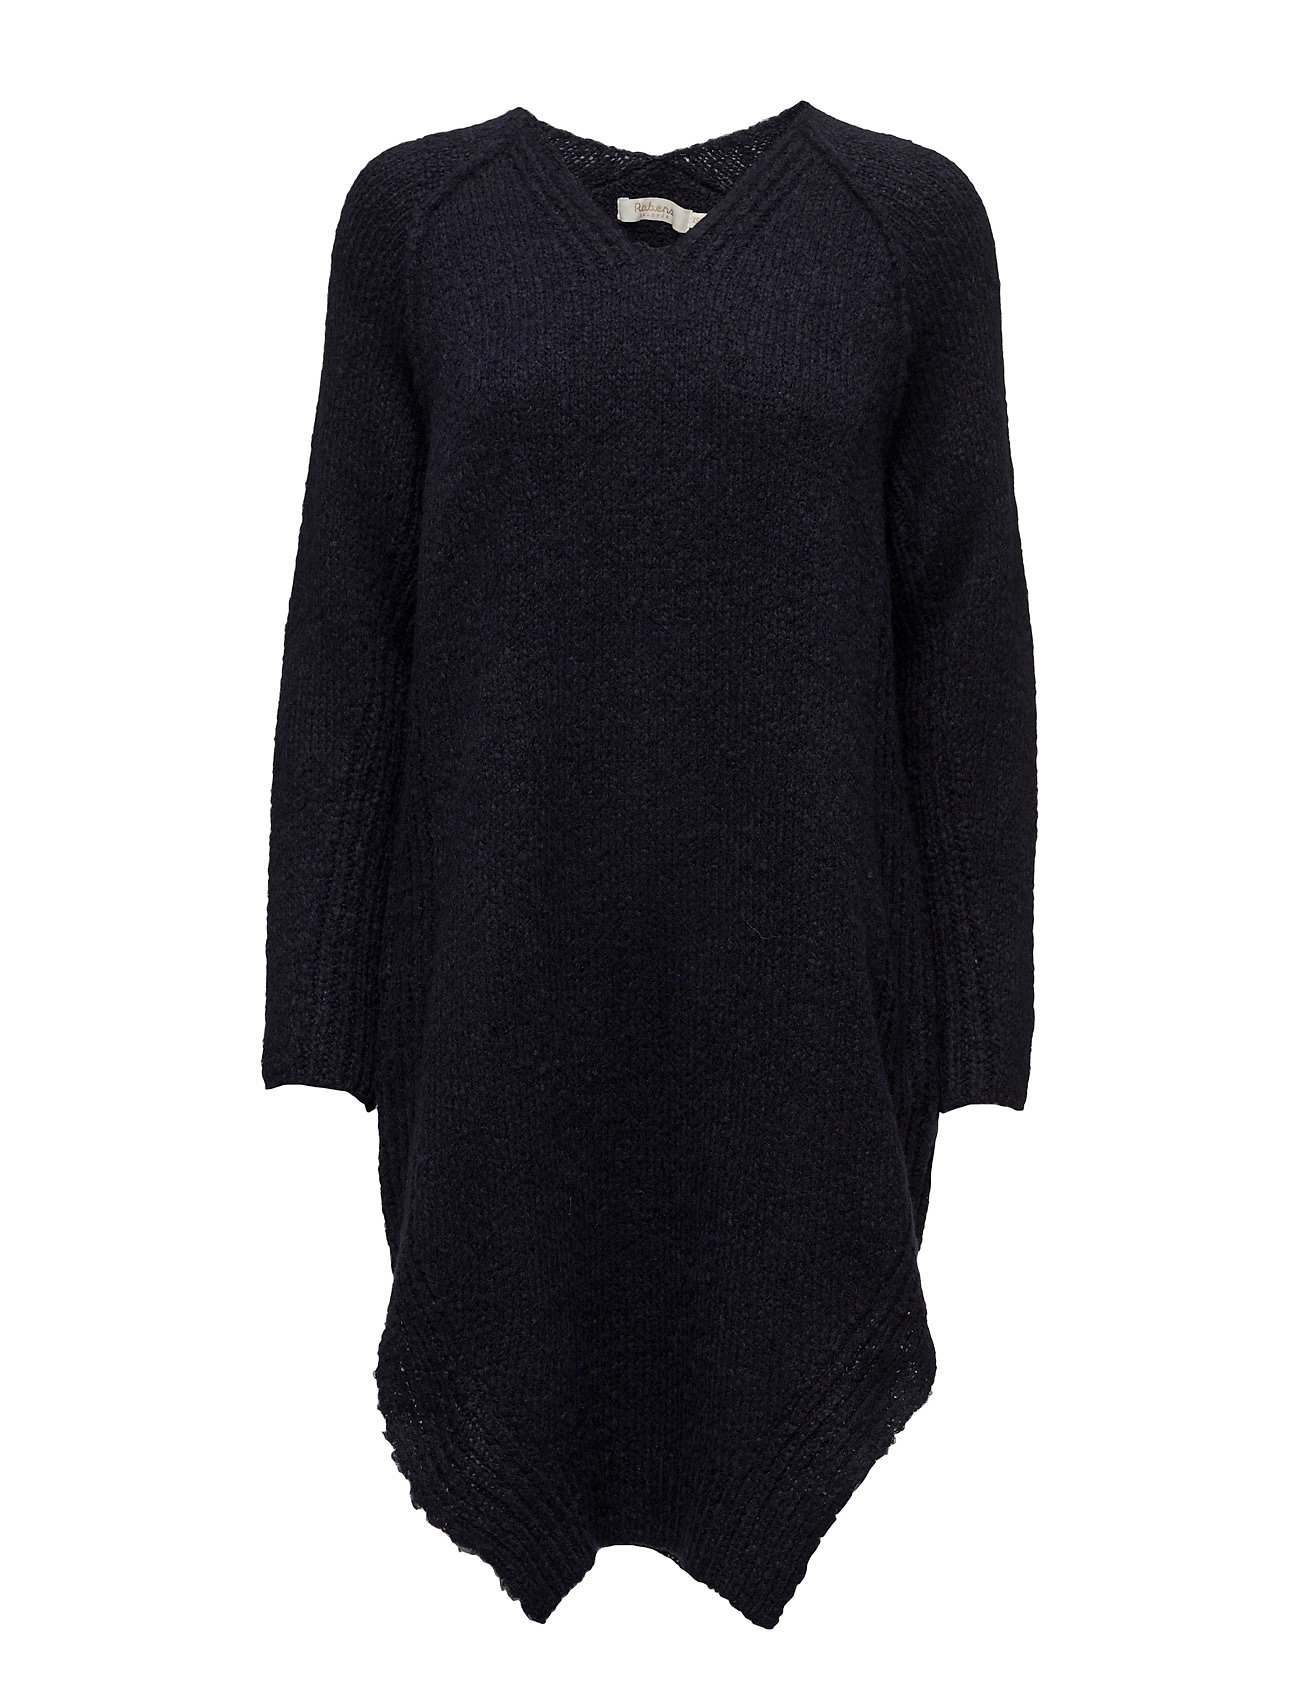 rabens saloner – Linked tunic dress på boozt.com dk